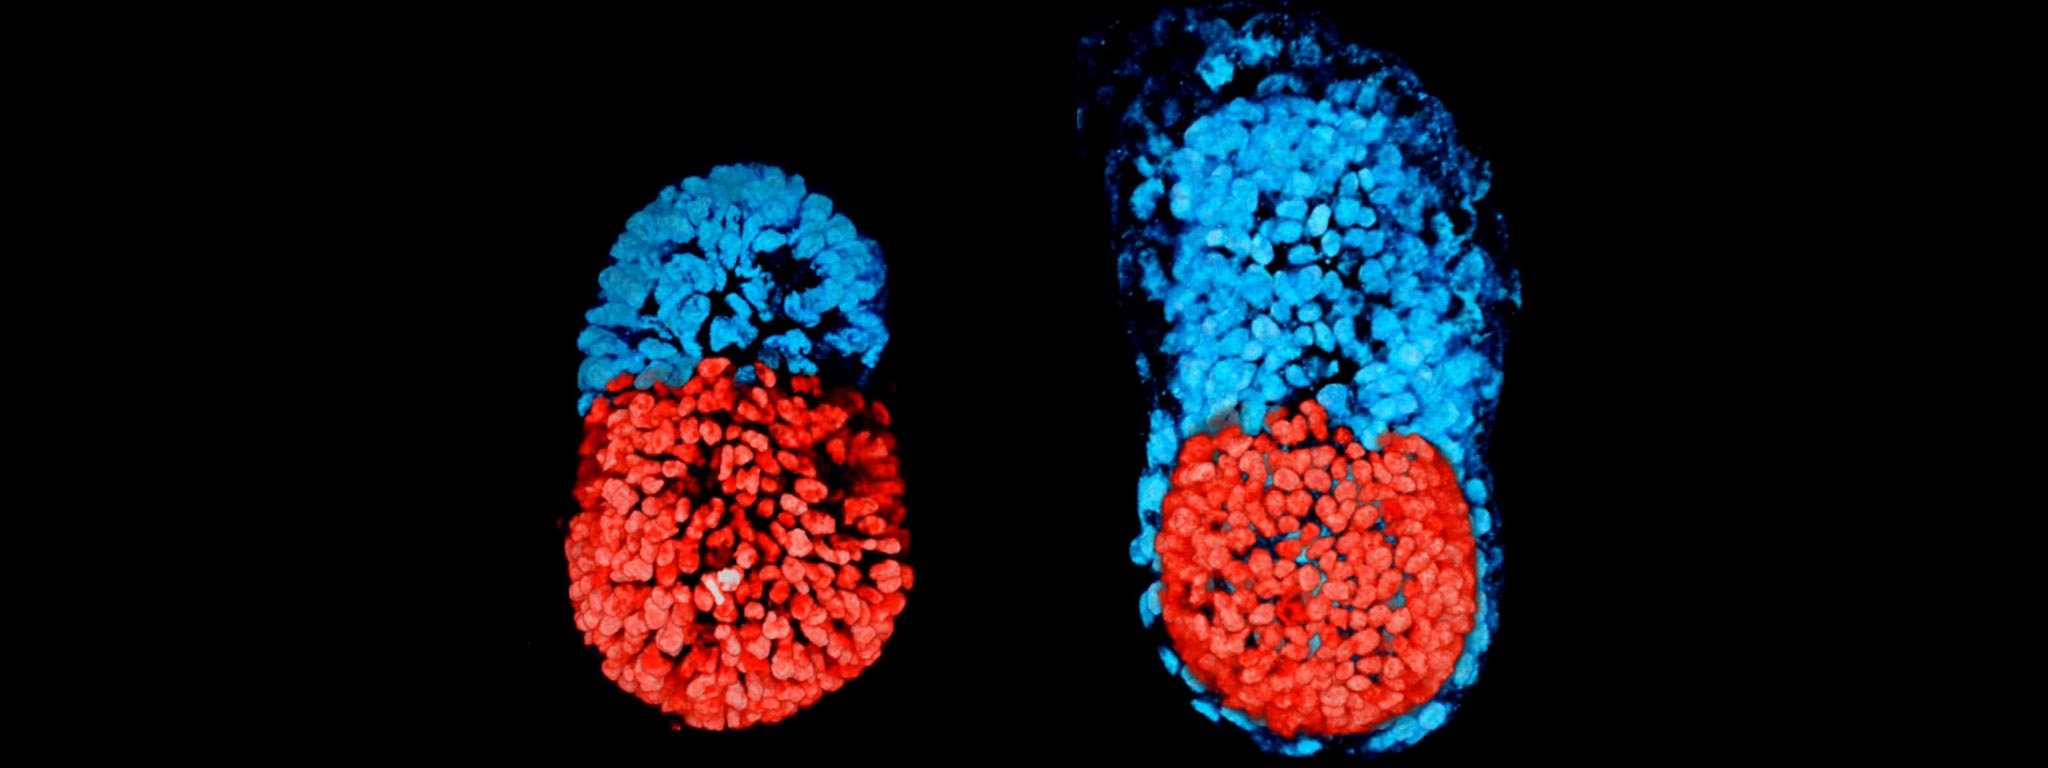 mouse embryo changing to bullet shape